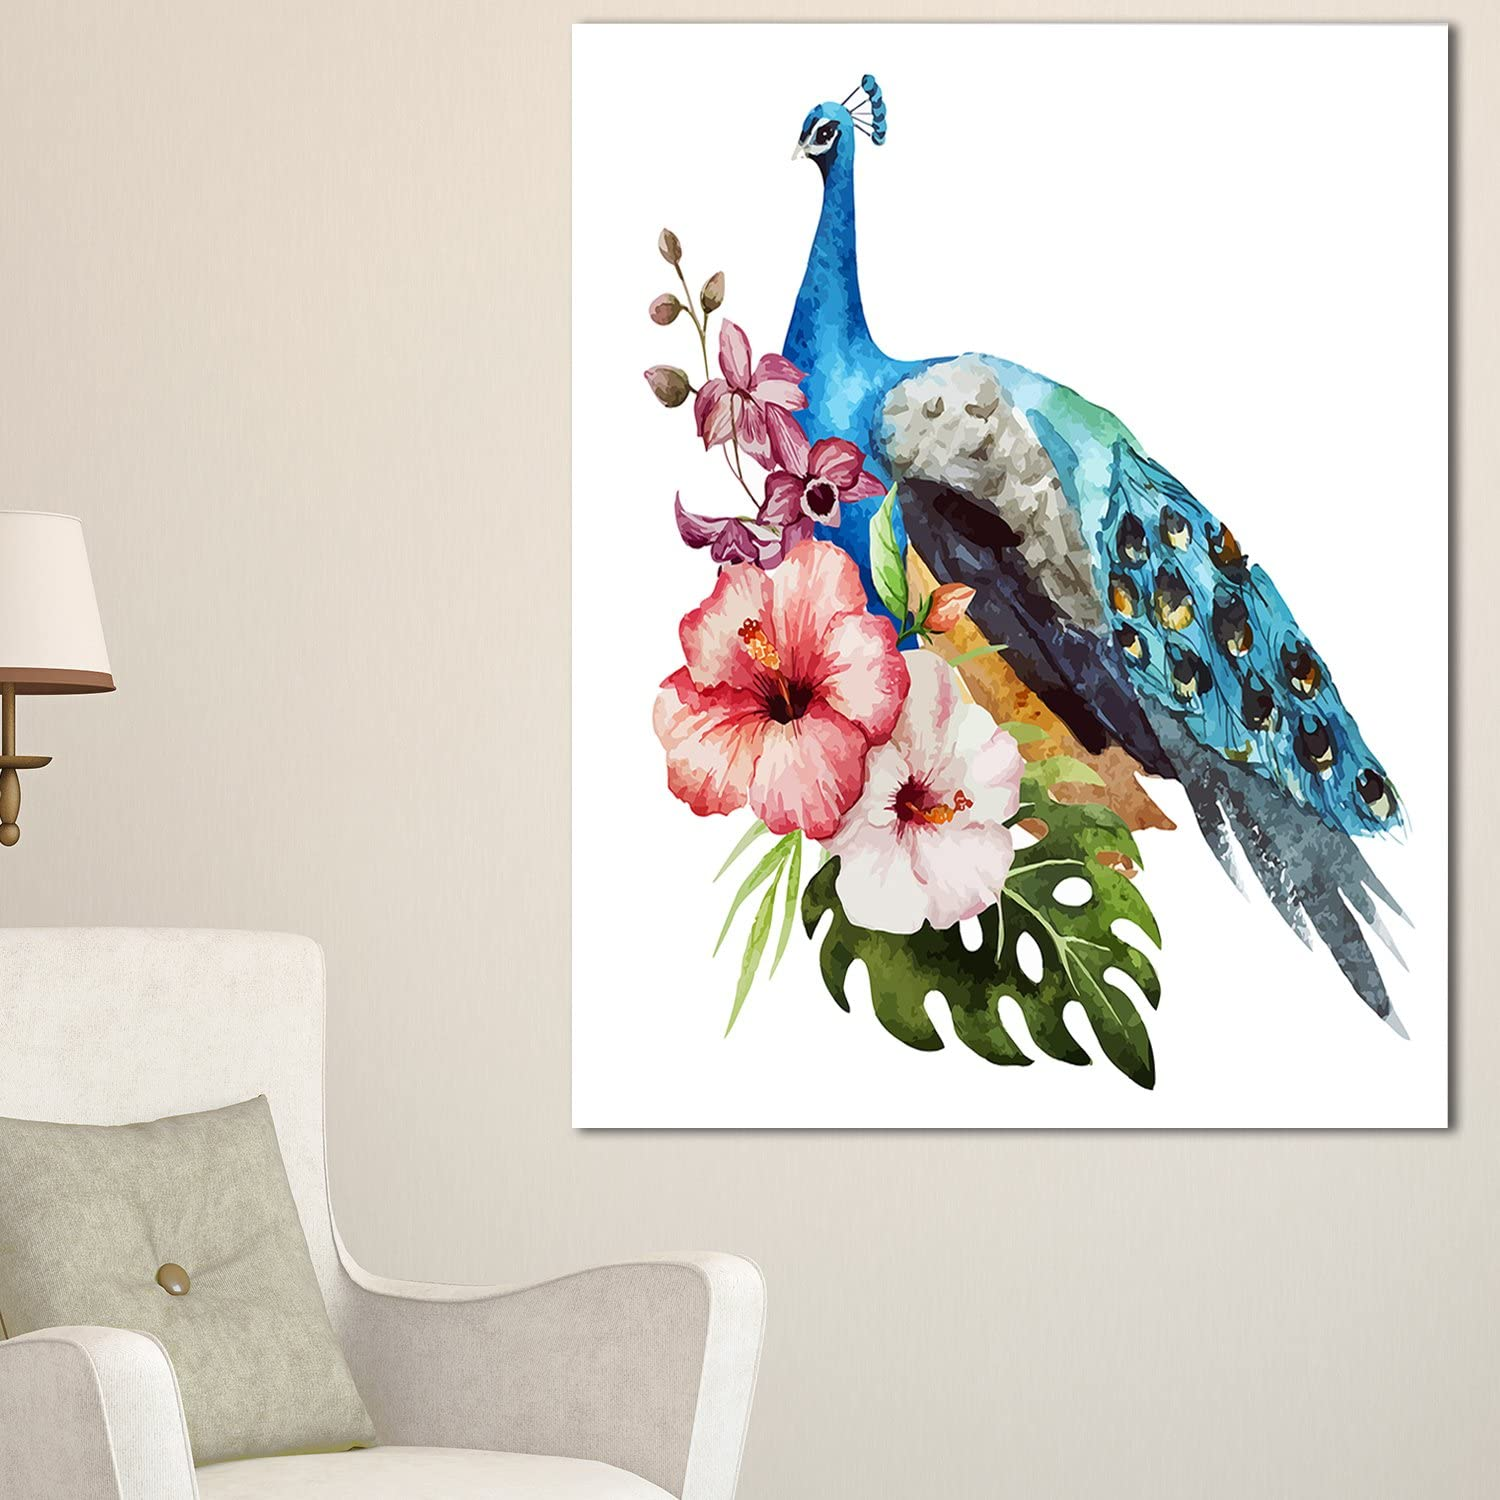 Designart PT11800-30-40 Hibiscus Blue Peacock safety Al sold out. Flower Large Canva